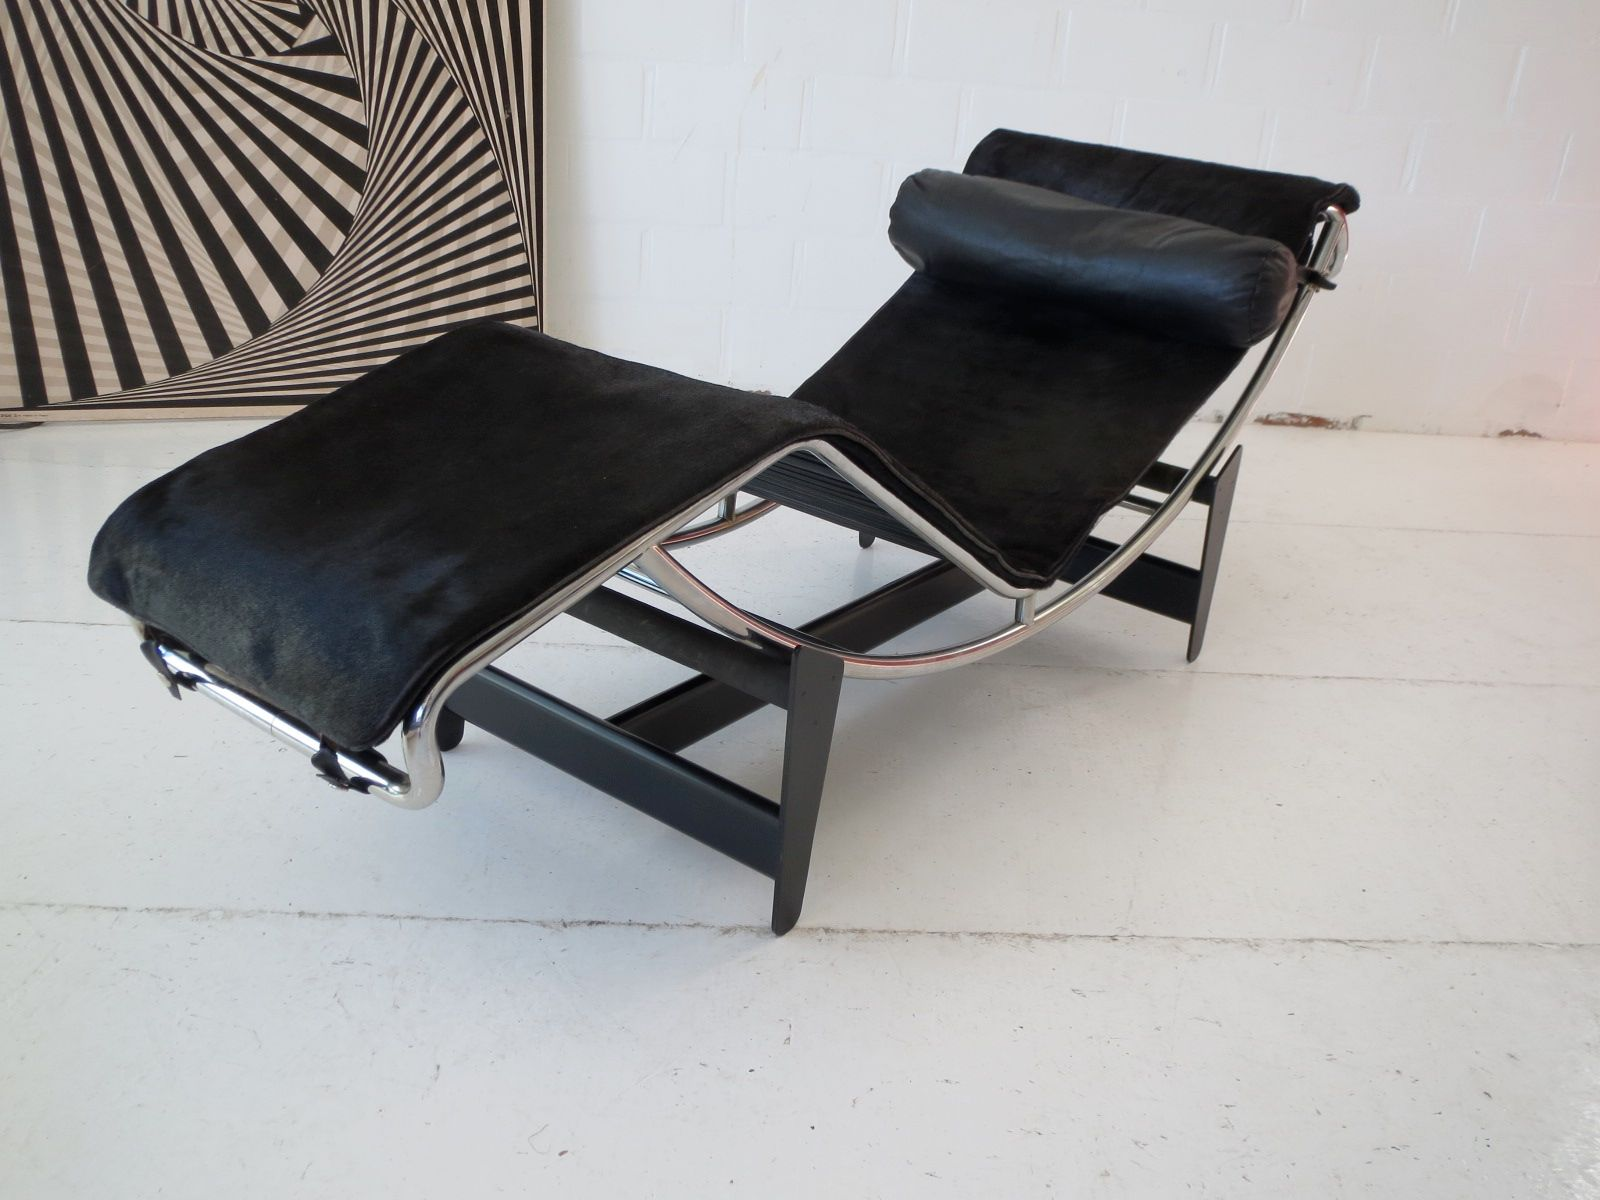 Early under 750 numbered lc4 chaise longue by le for Chaise longue le corbusier vache